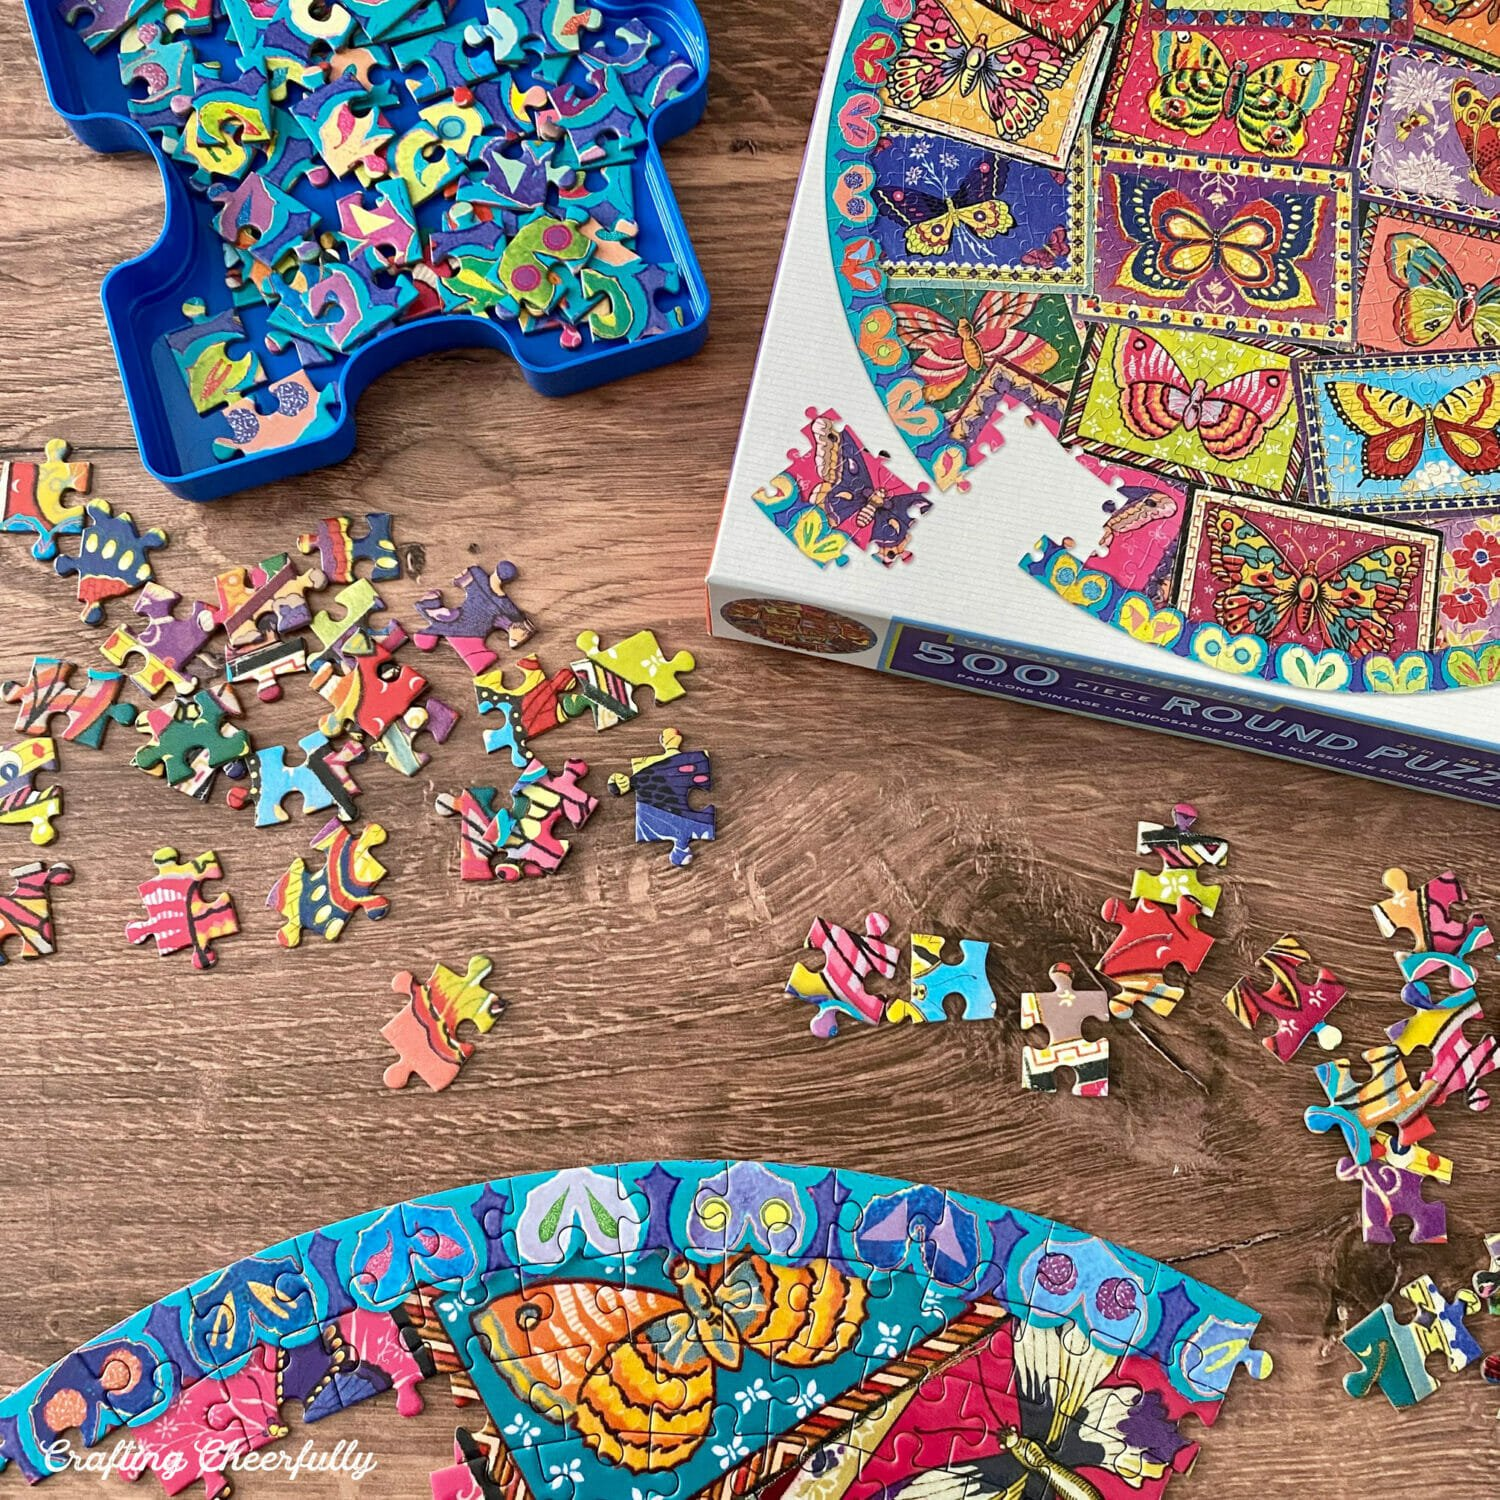 Overhead pictures of a puzzle being assembled on a wooden table.